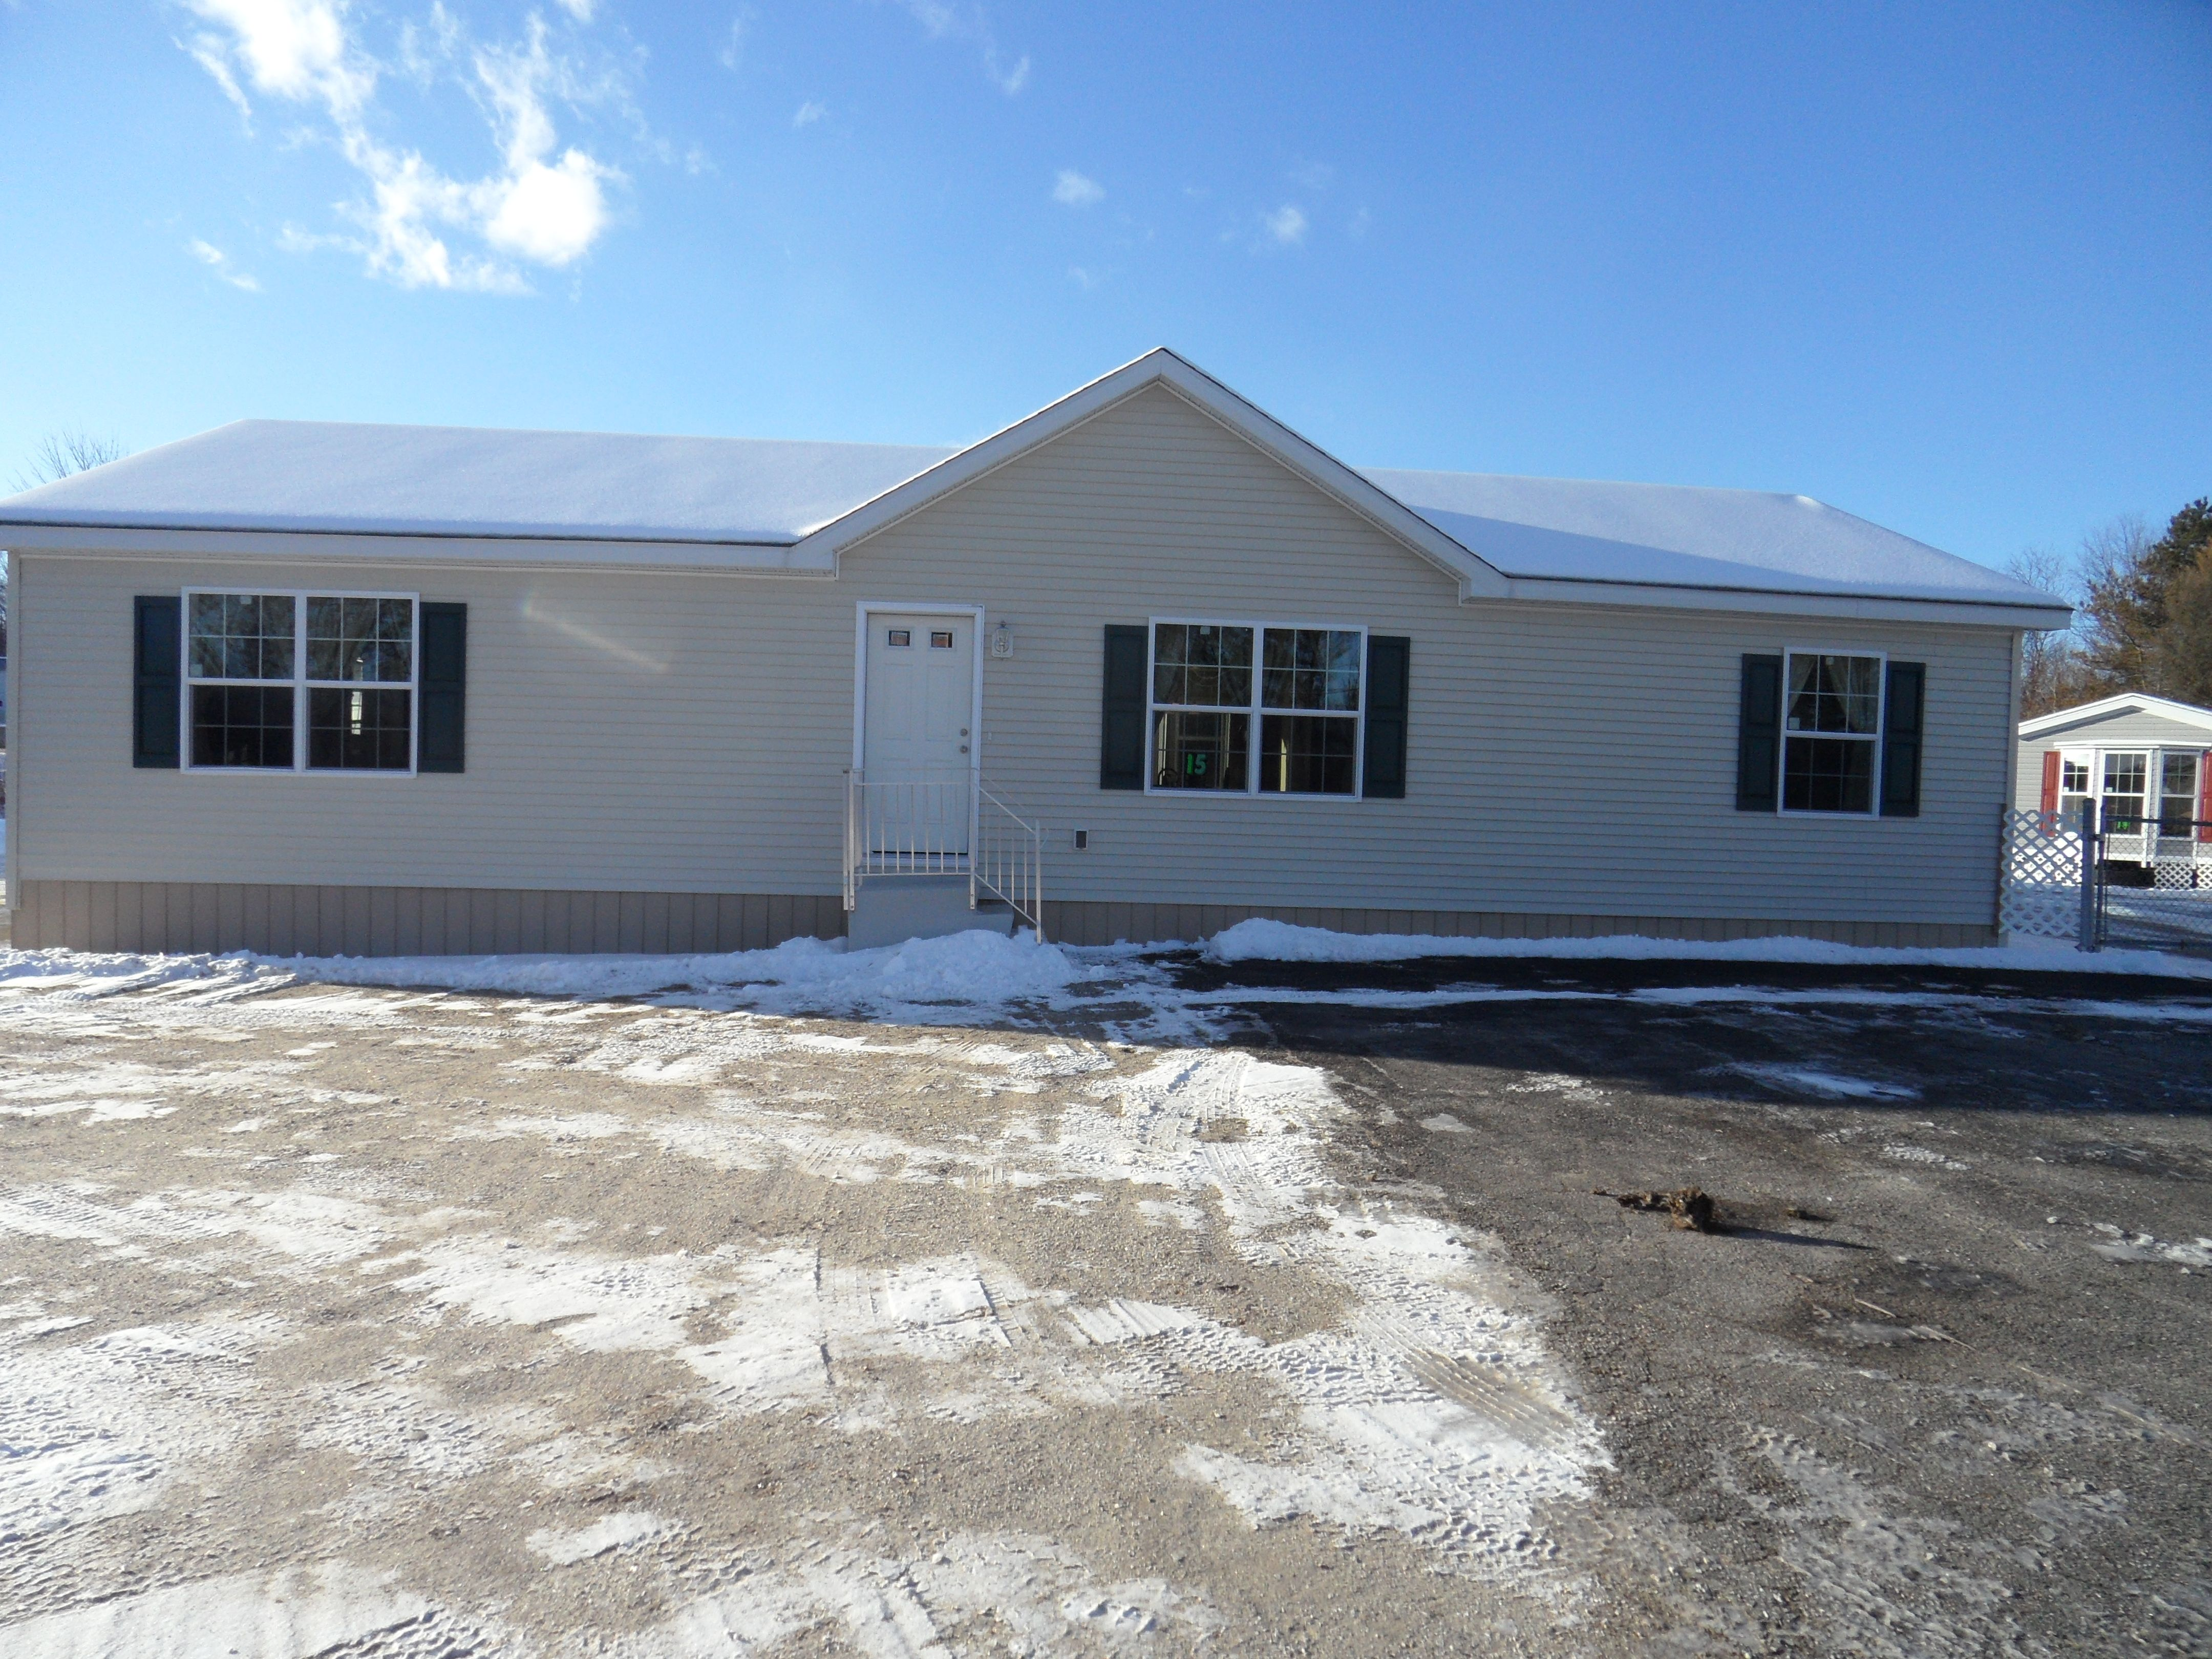 3 Bedroom New Era R103 Modular Ranch Home For Sale at